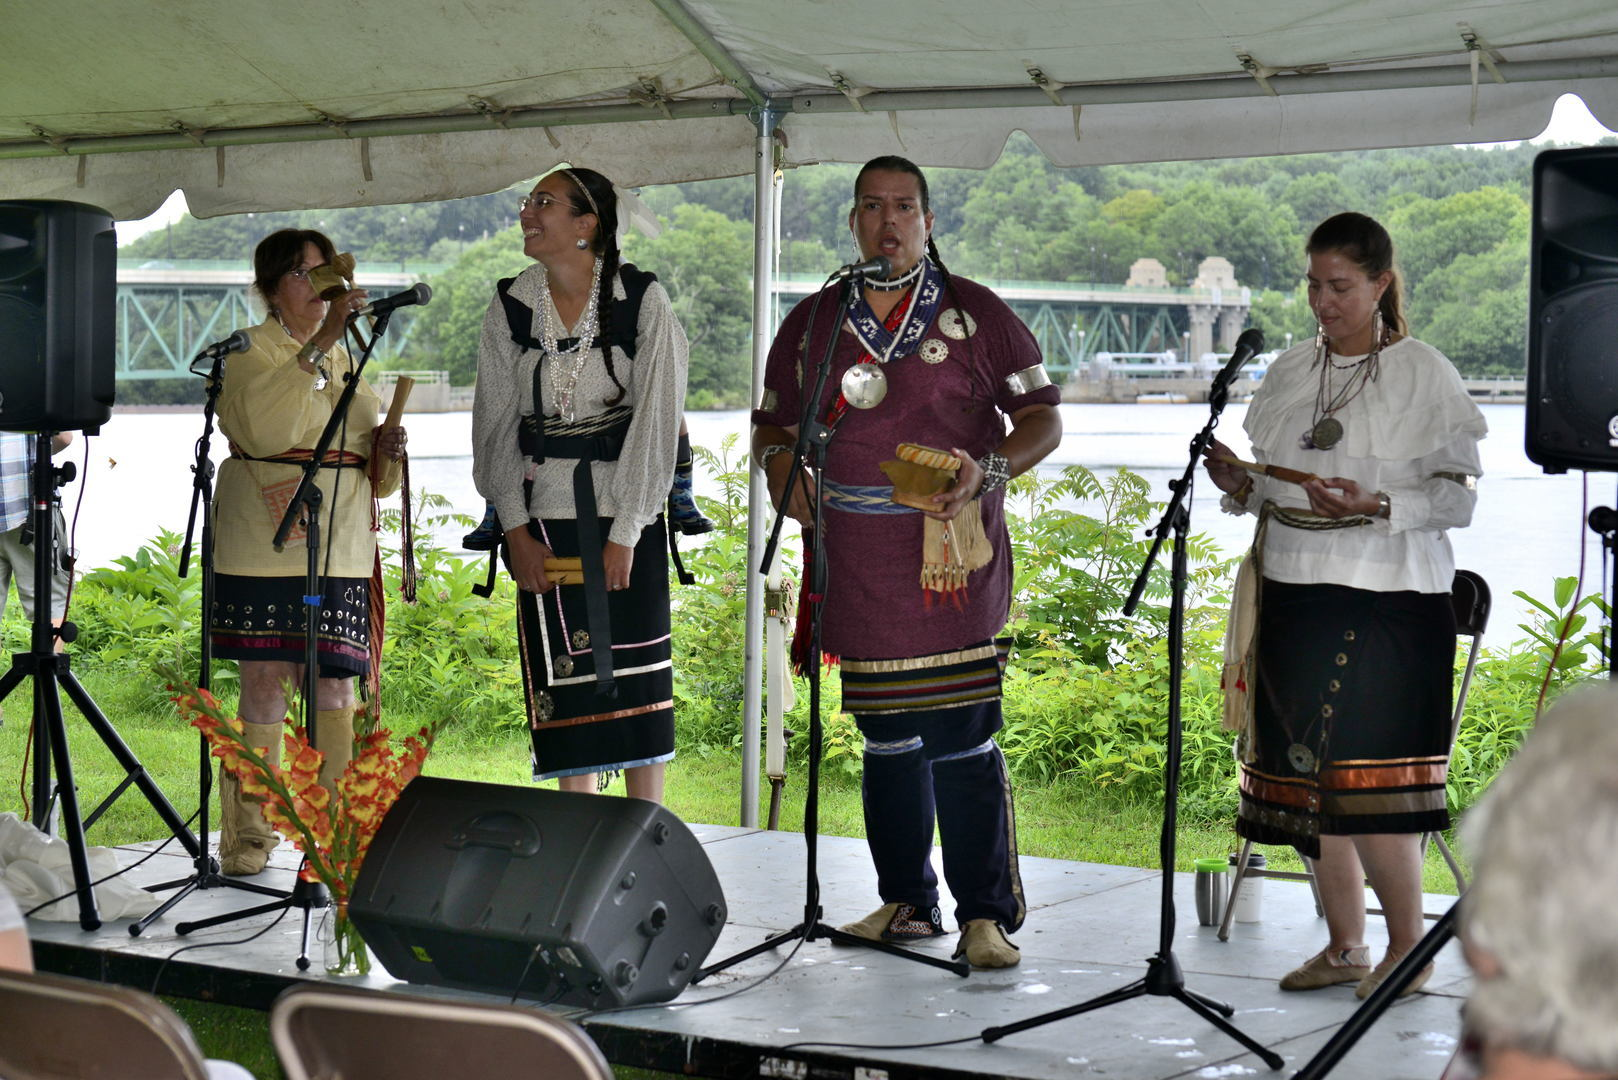 8th Annual Pocumtuck Homelands Festival - 8th Annual Pocumtuck Homelands Festival